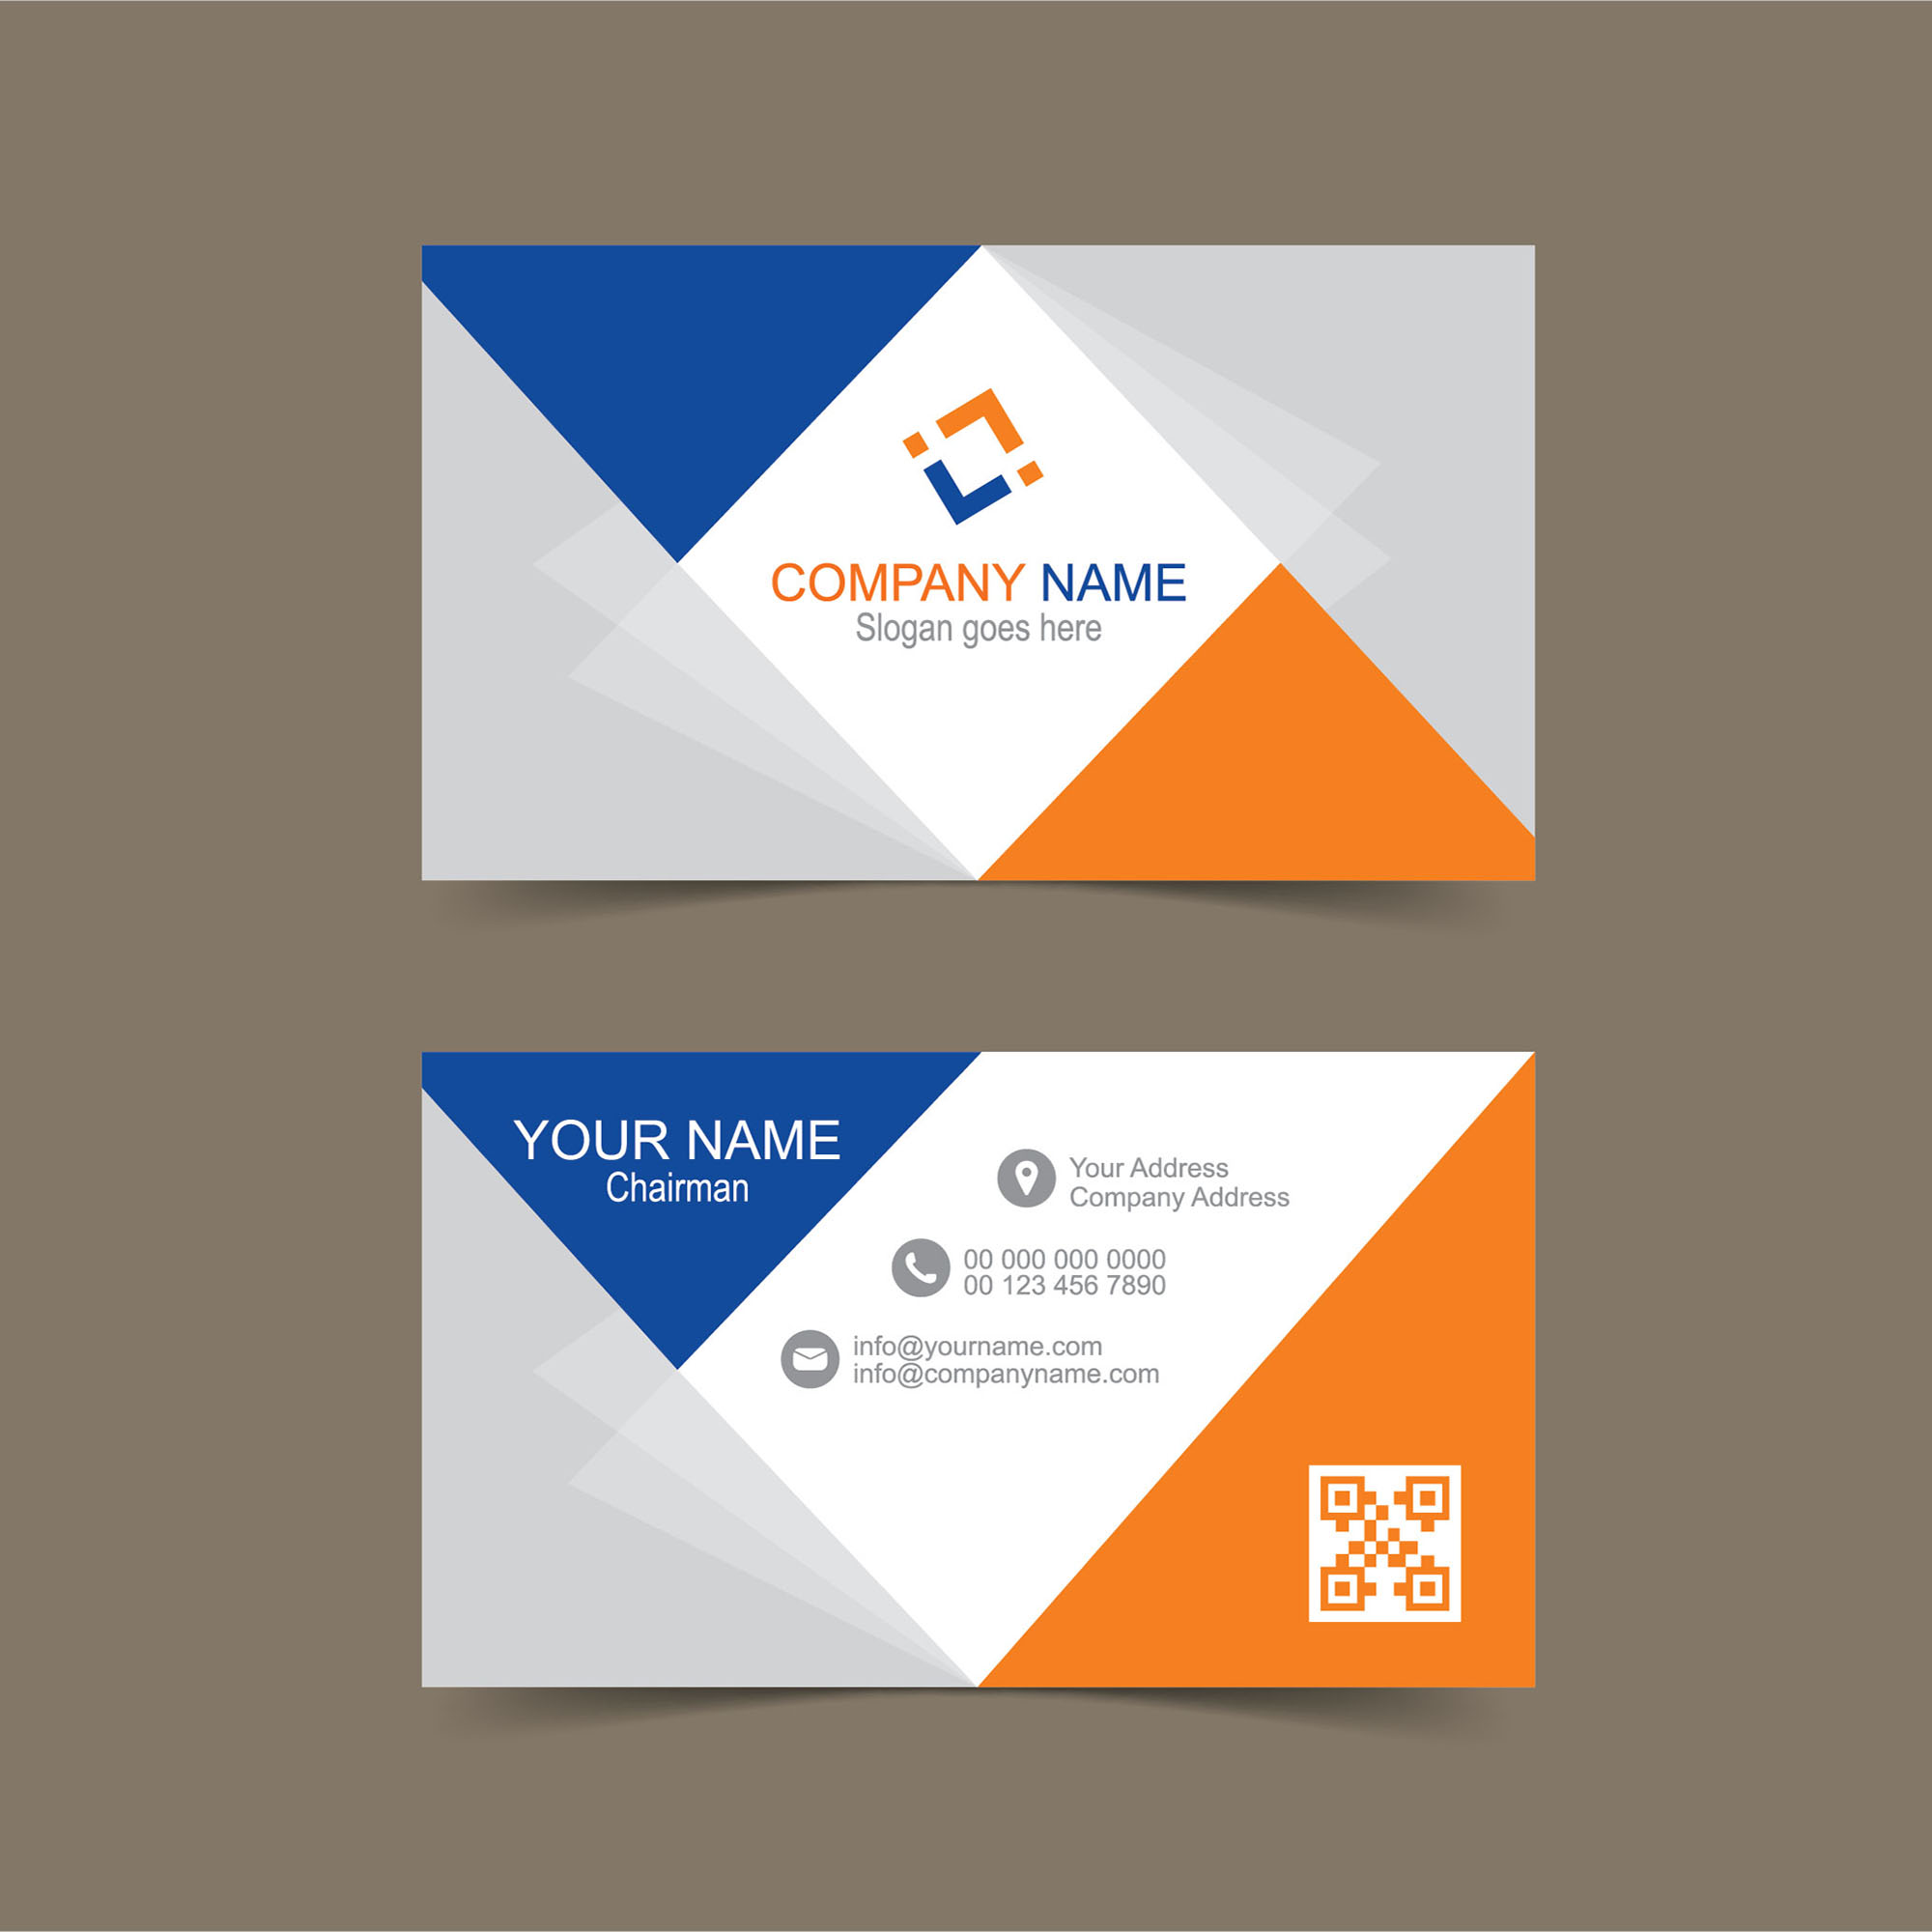 Free business card template for illustrator wisxi free business card template for illustrator business card business cards business card design business card template design templates flashek Choice Image